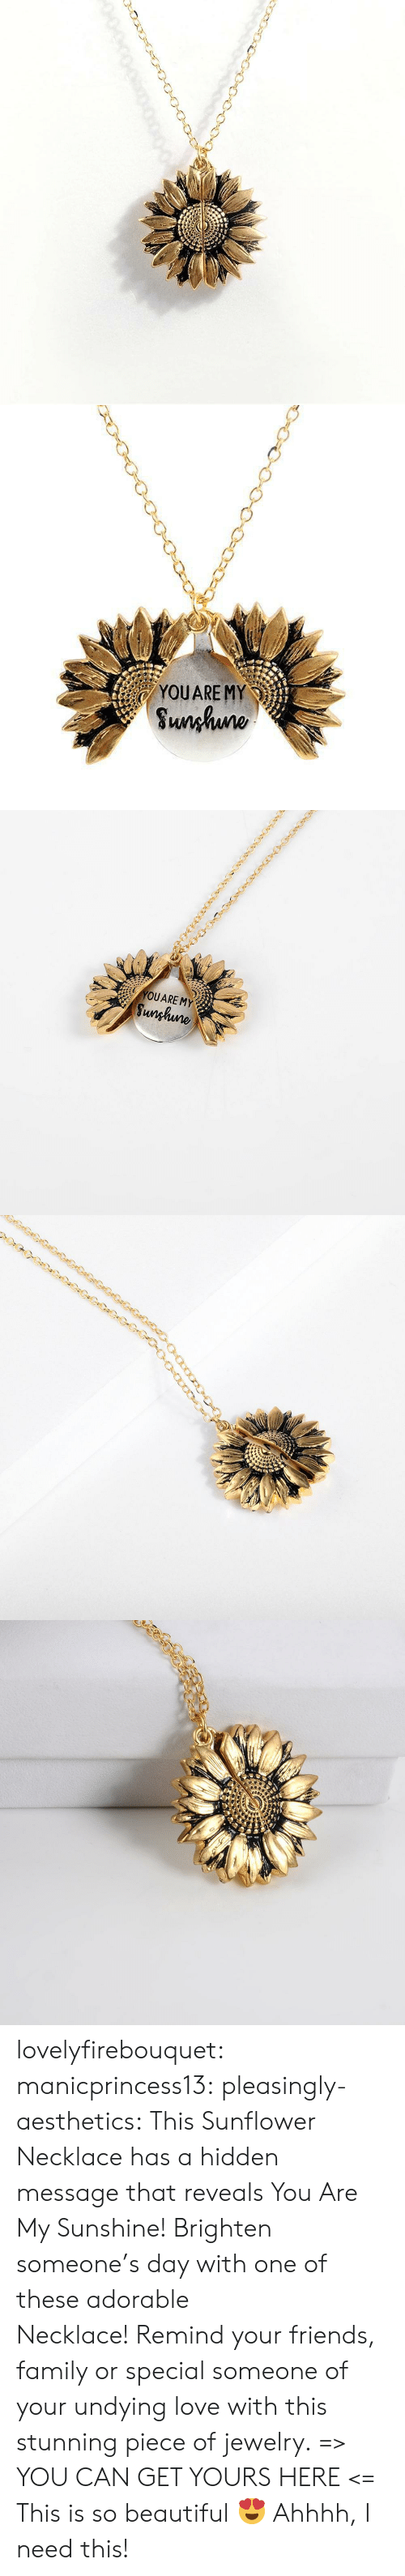 Ahhhh: YOUARE MY  Sunhuno   YOUARE MY  Sunghune lovelyfirebouquet:  manicprincess13: pleasingly-aesthetics:  This Sunflower Necklace has a hidden message that reveals You Are My Sunshine! Brighten someone's day with one of these adorable Necklace!Remind your friends, family or special someone of your undying love with this stunning piece of jewelry. => YOU CAN GET YOURS HERE <=   This is so beautiful ?   Ahhhh, I need this!